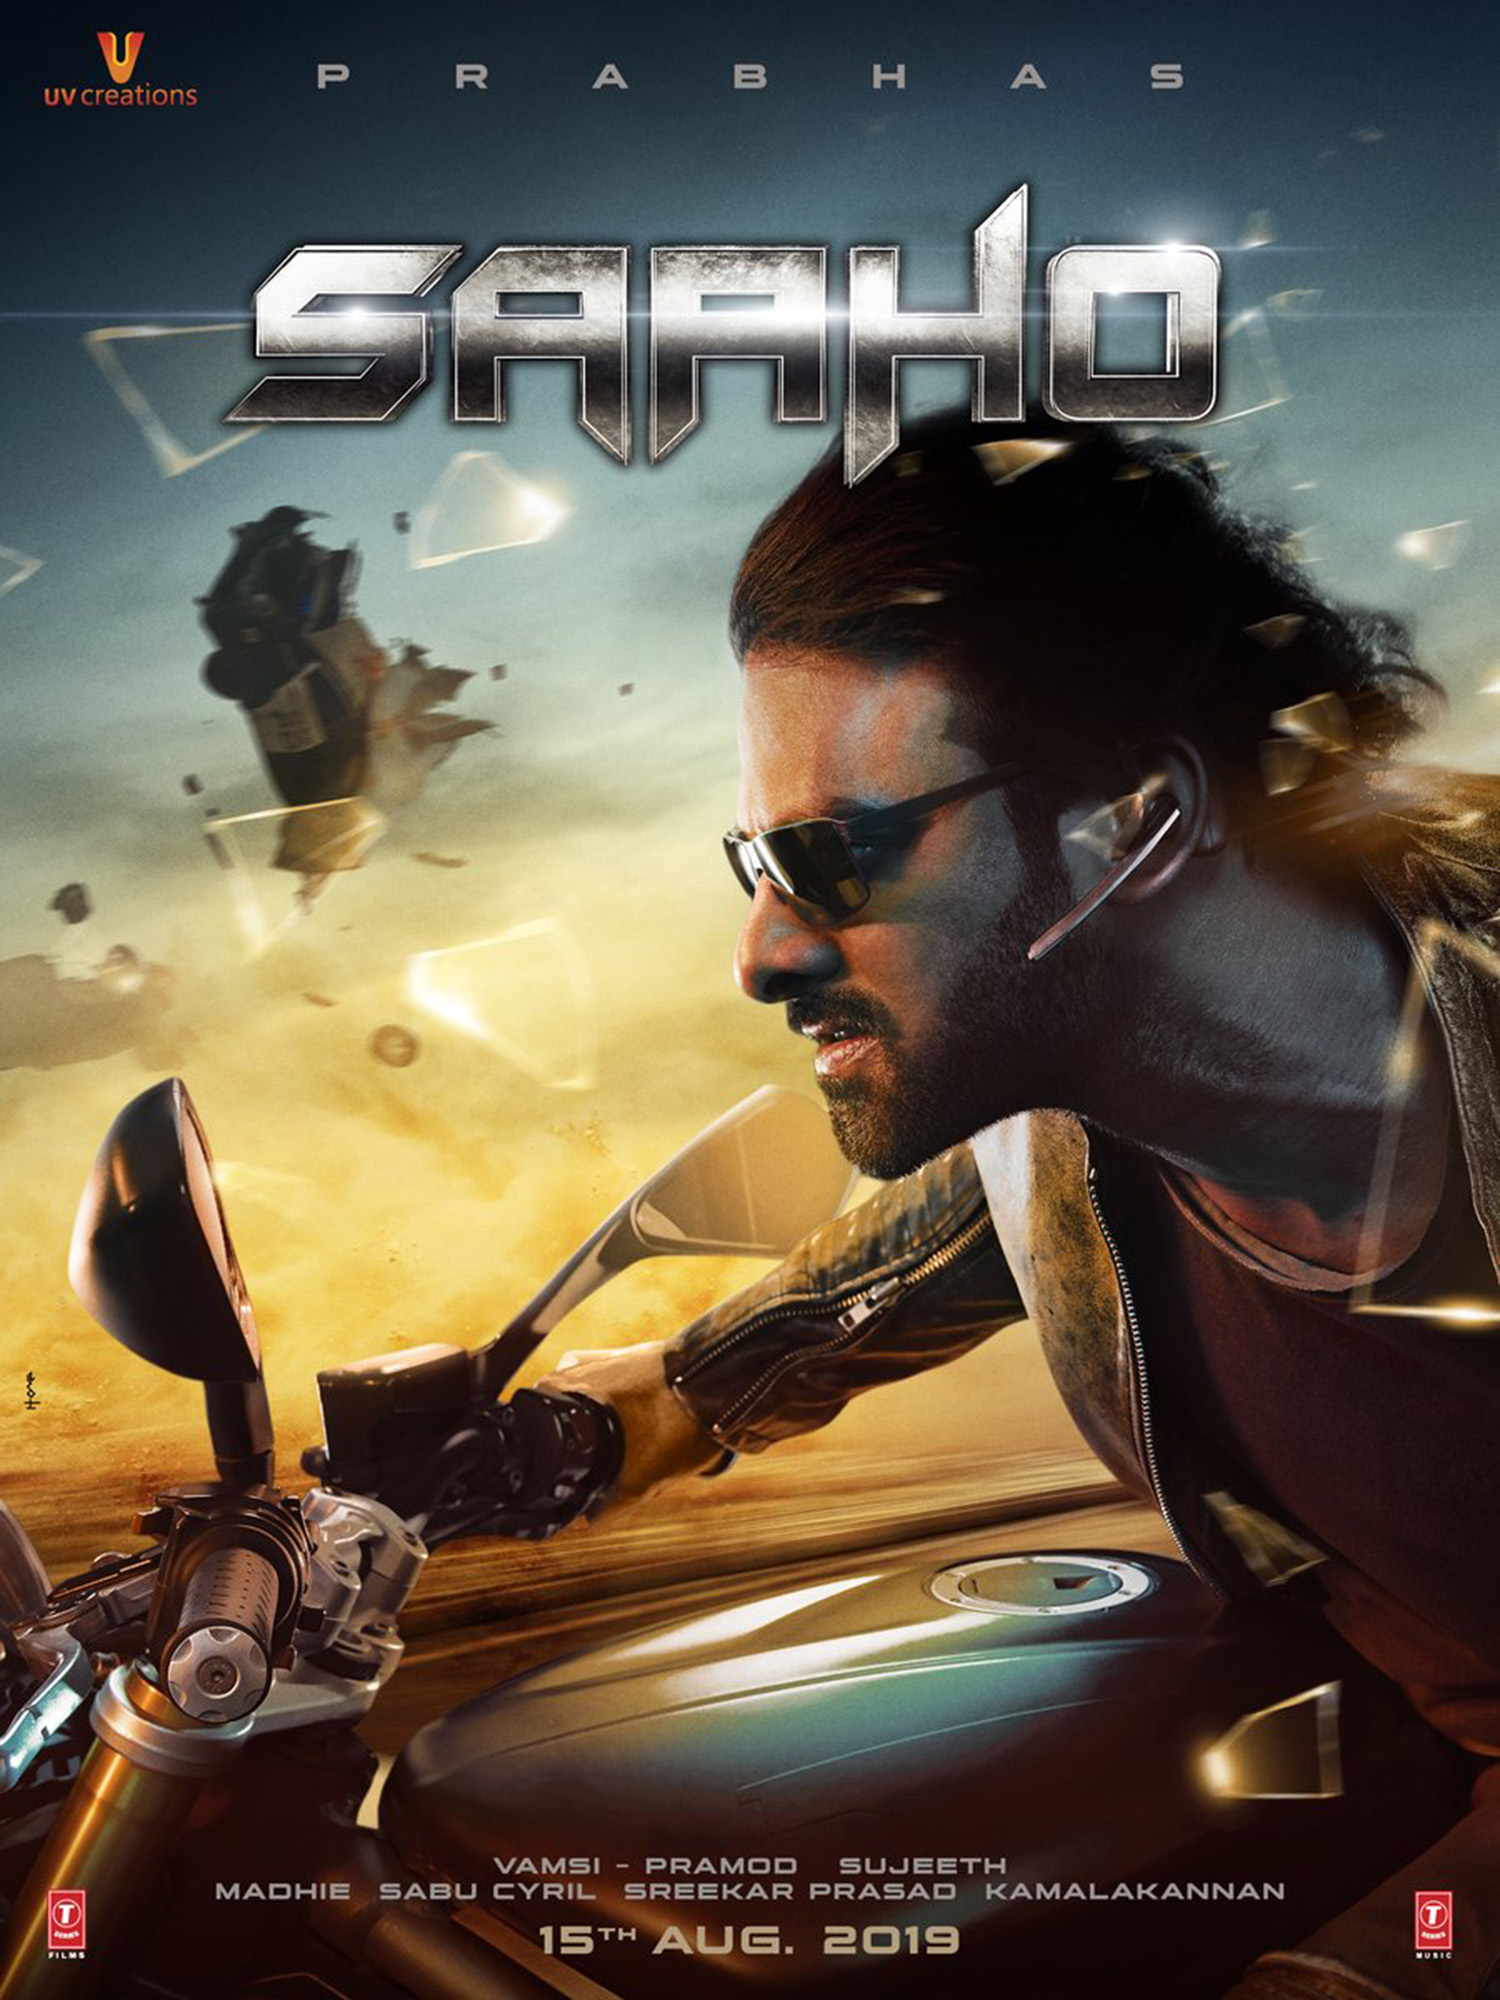 saaho,saaho action packed poster,new action packed poster of saaho,prabhas,Shradhha Kapoor,prabhas new film,prabhas new film stills,prabhas new movie images,prabhas saaho poster,prabhas saaho images,prabhas in sahoo,sahoo latest poster